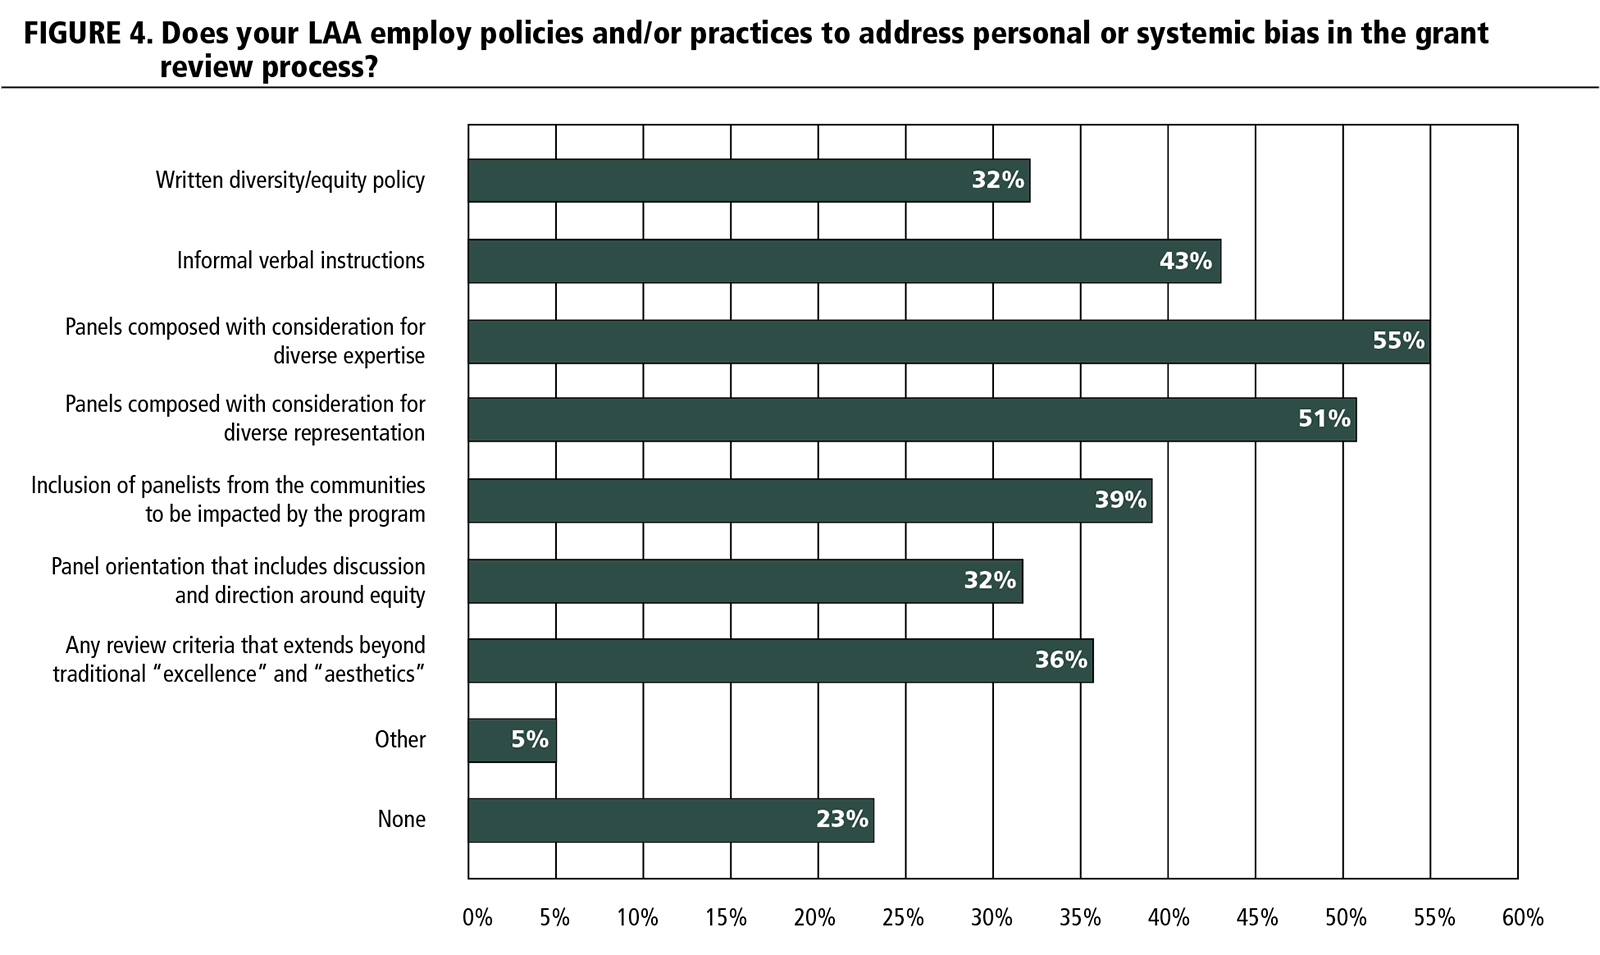 FIGURE 4. Does your LAA employ policies and/or practices to address personal or systemic bias in the grant review process?